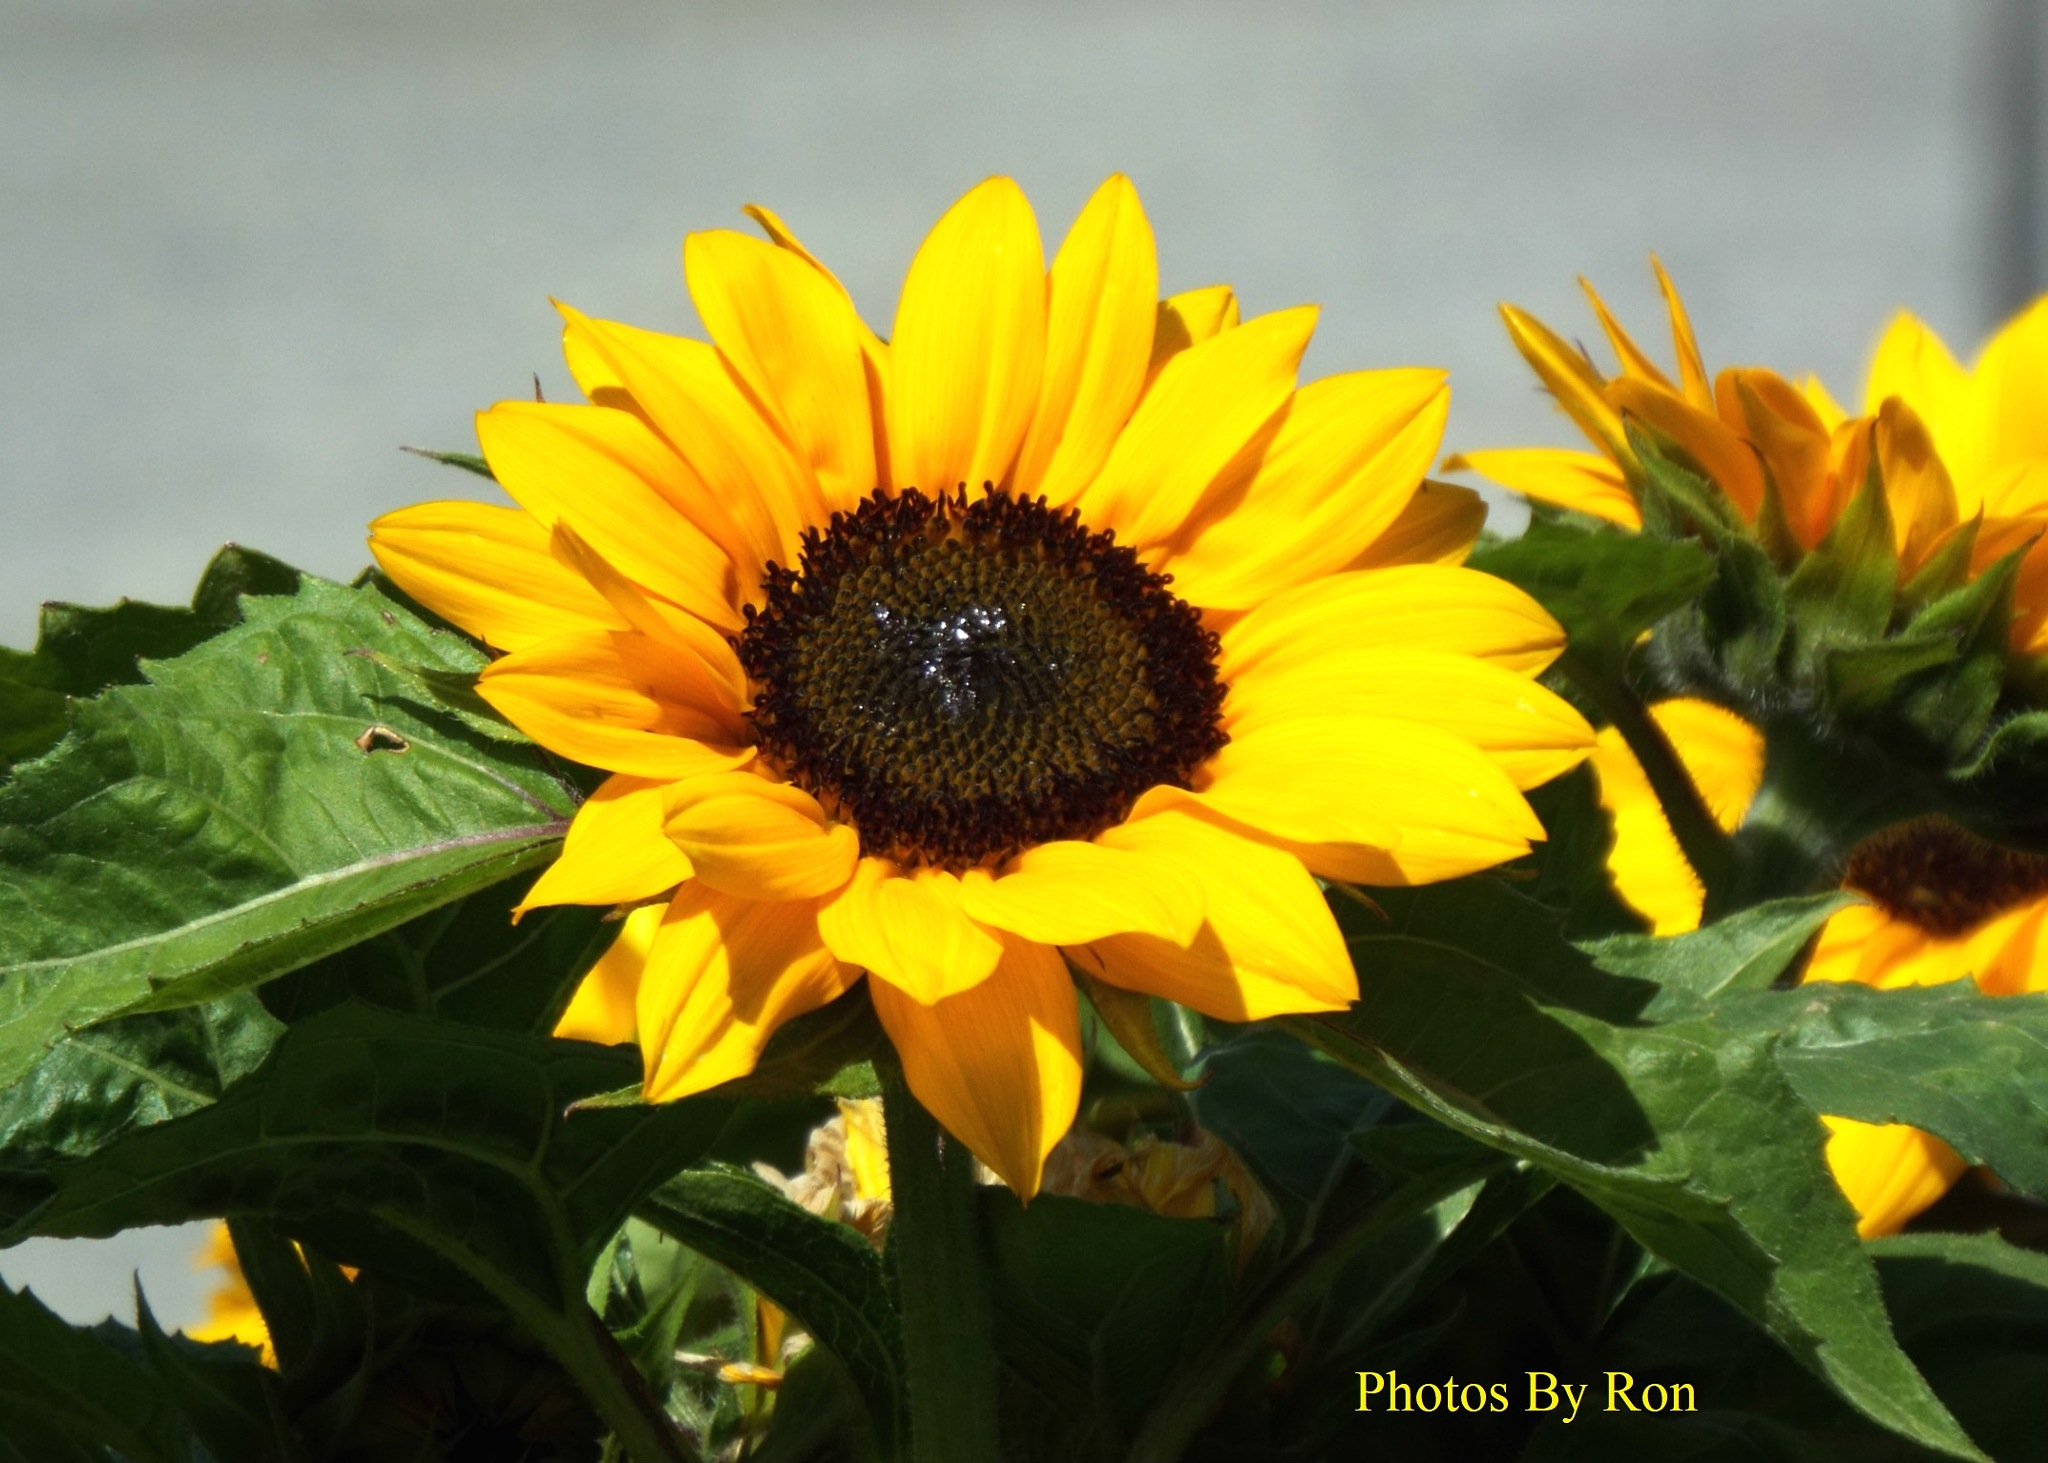 """Sunflower Meets The Fly"" by Ron Berkley"